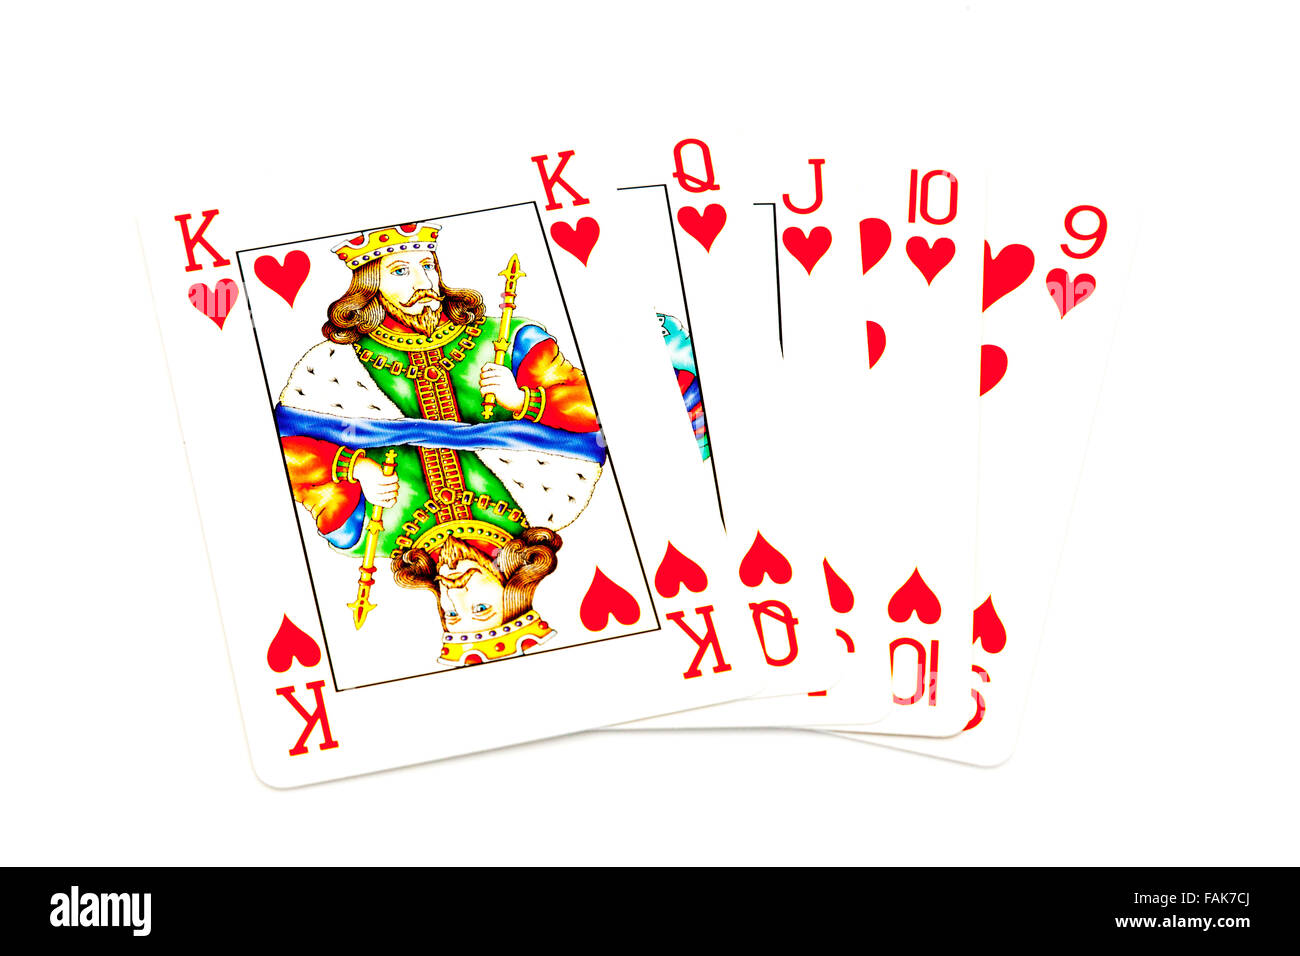 A straight flush five consecutive cards all of the same suit poker hand card cards game games hearts king queen - Stock Image